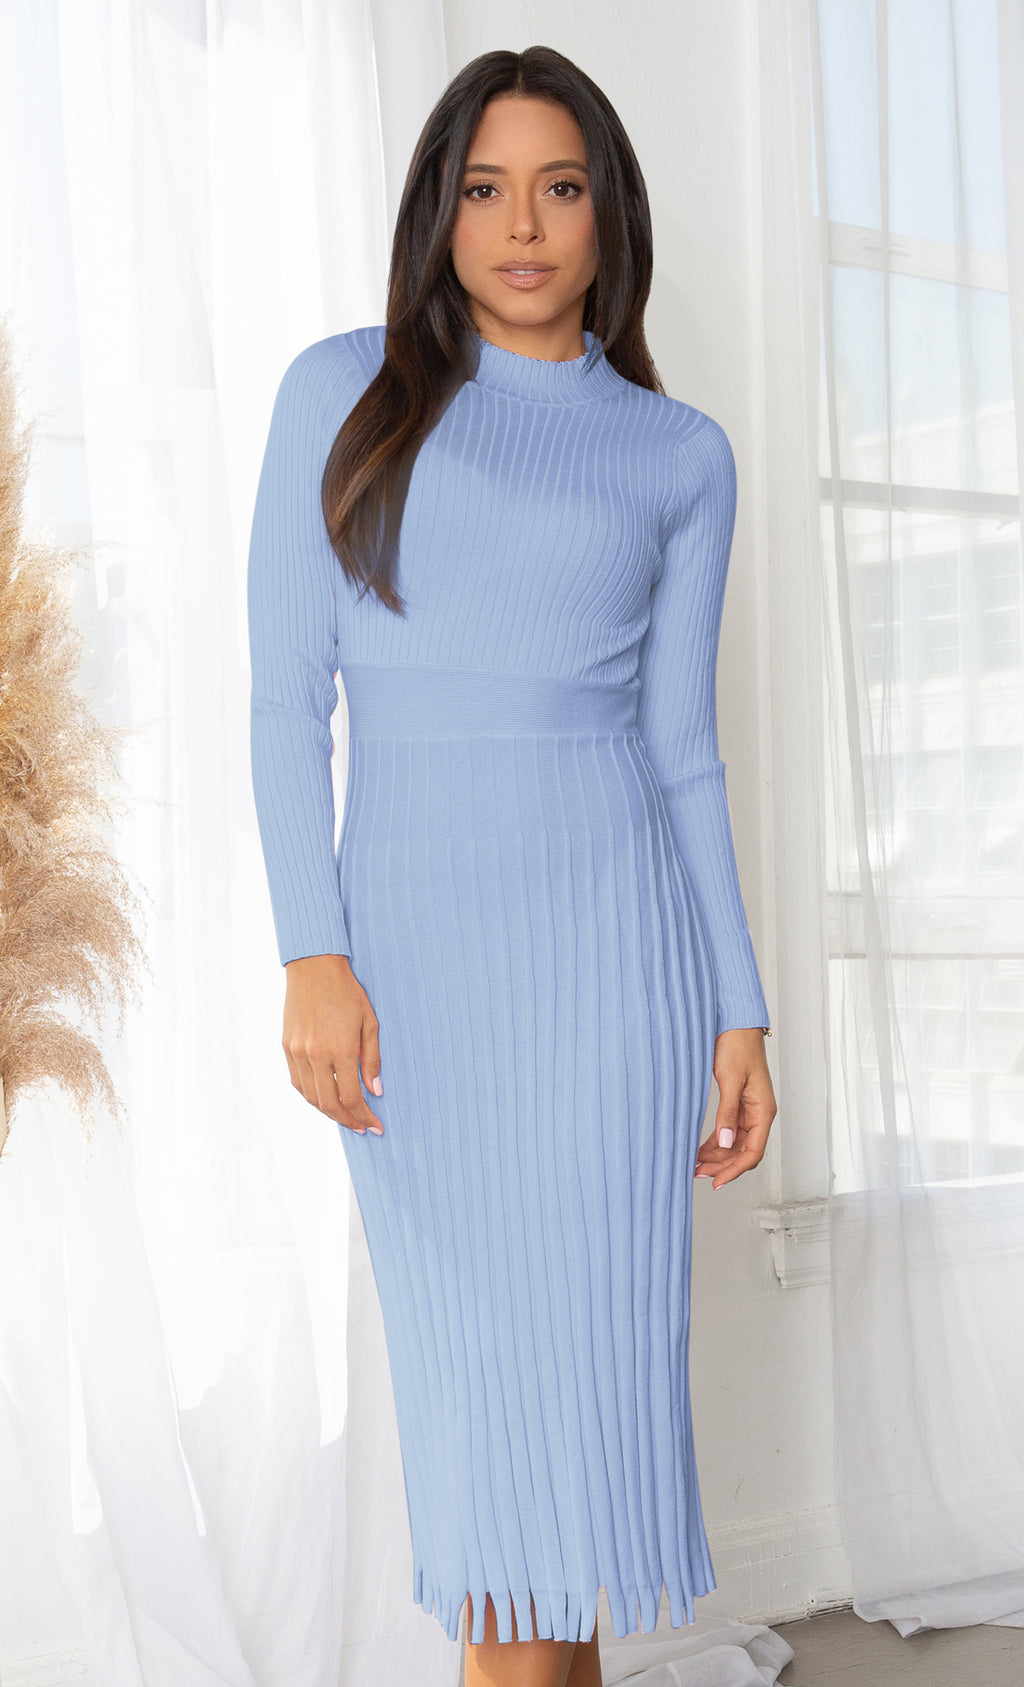 All You Want Sky Blue Pleated Crew Ribbed Round Neck Modest Long Sleeve Stretch Knit Body Con Sweater Midi Dress